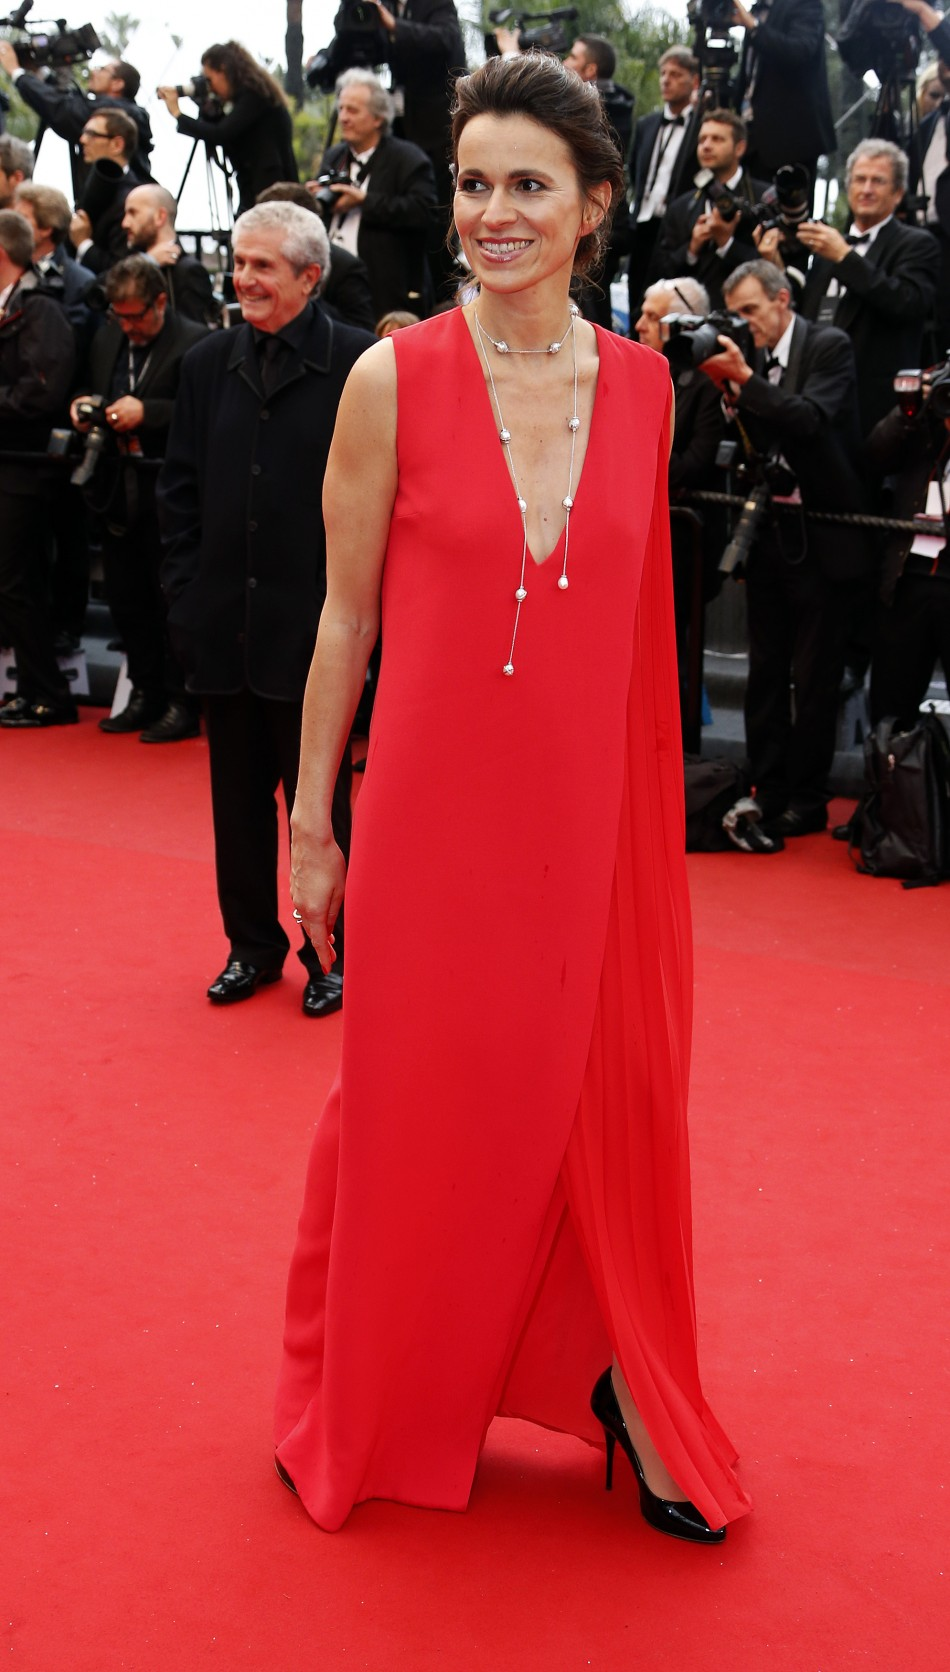 French Culture Minister Aurelie Filippetti poses on the red carpet as she arrives for the screening of the film Jimmy P. Psychotherapy of a Plains Indian in competition at the 66th Cannes Film Festival in Cannes May 18, 2013.